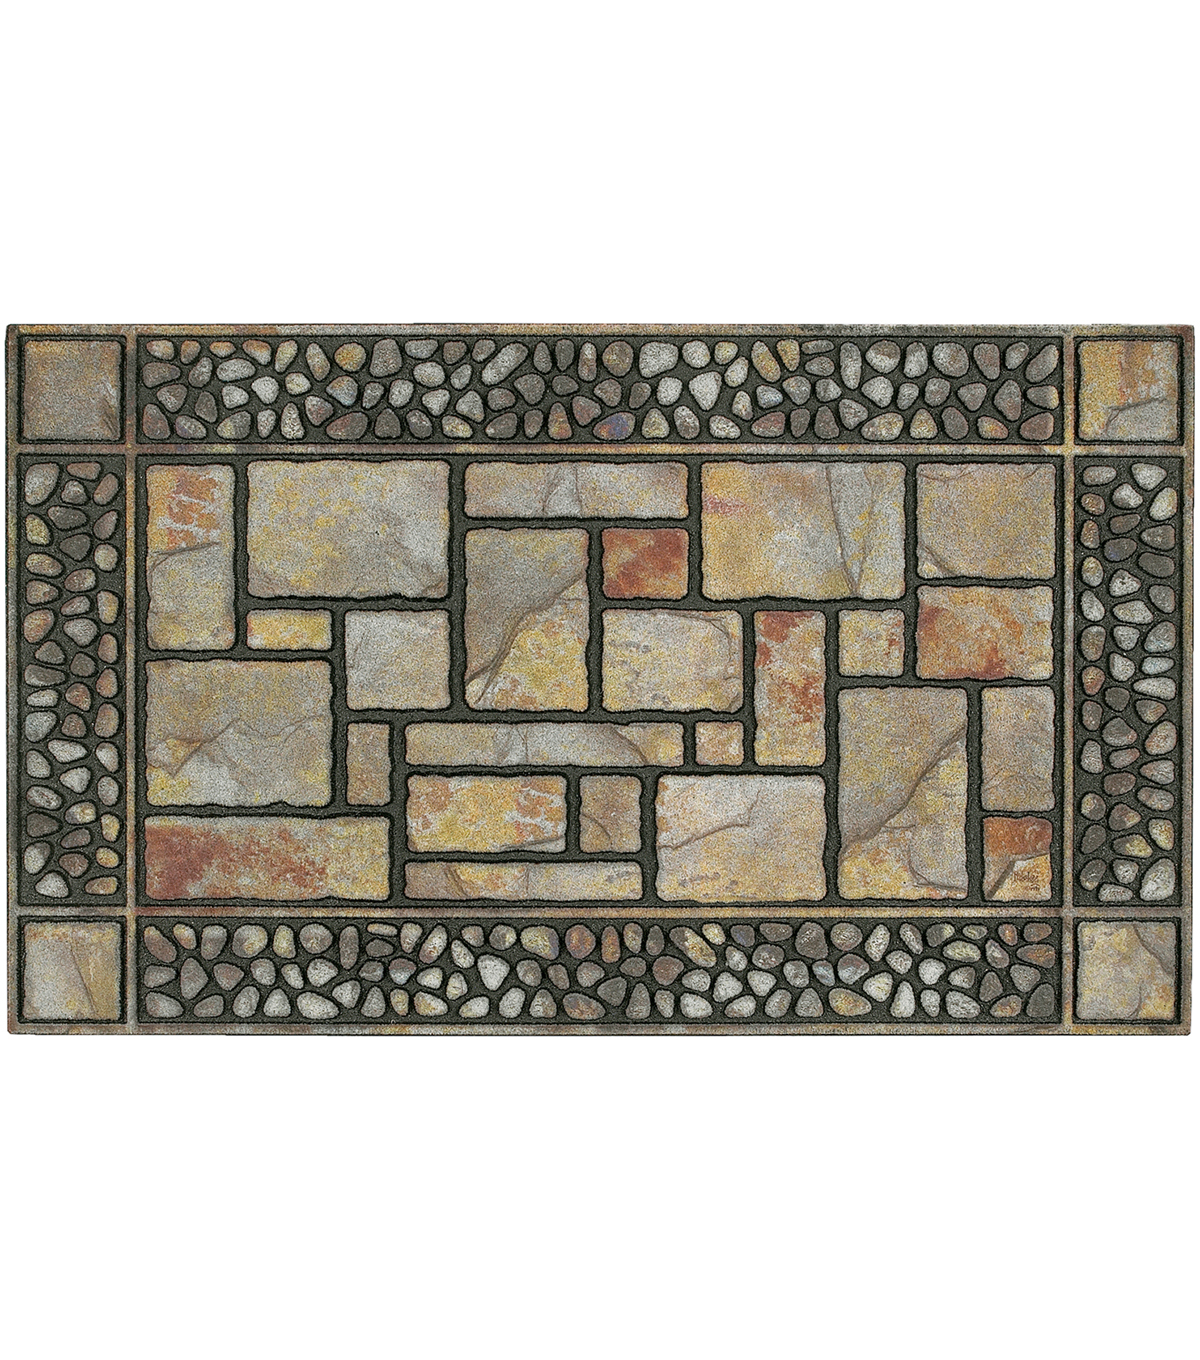 Mohawk Home 18\u0027\u0027x30\u0027\u0027 Doormat-Patio Stones